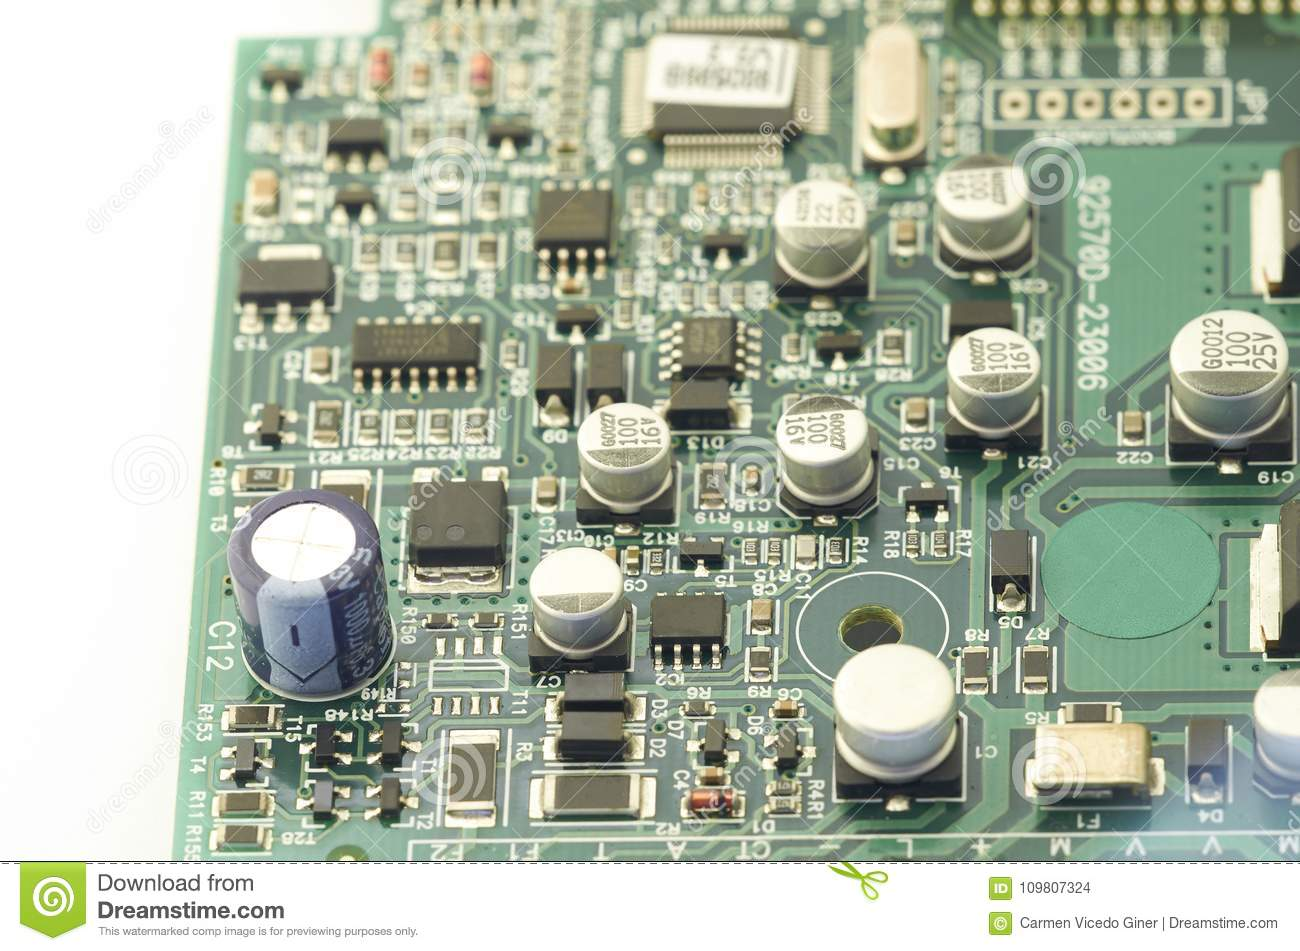 Electronic Circuit Board Pcb X28printed X29 With Boards Buy Printed Boardspcb Processor Microchips And Glowing Digital Signals